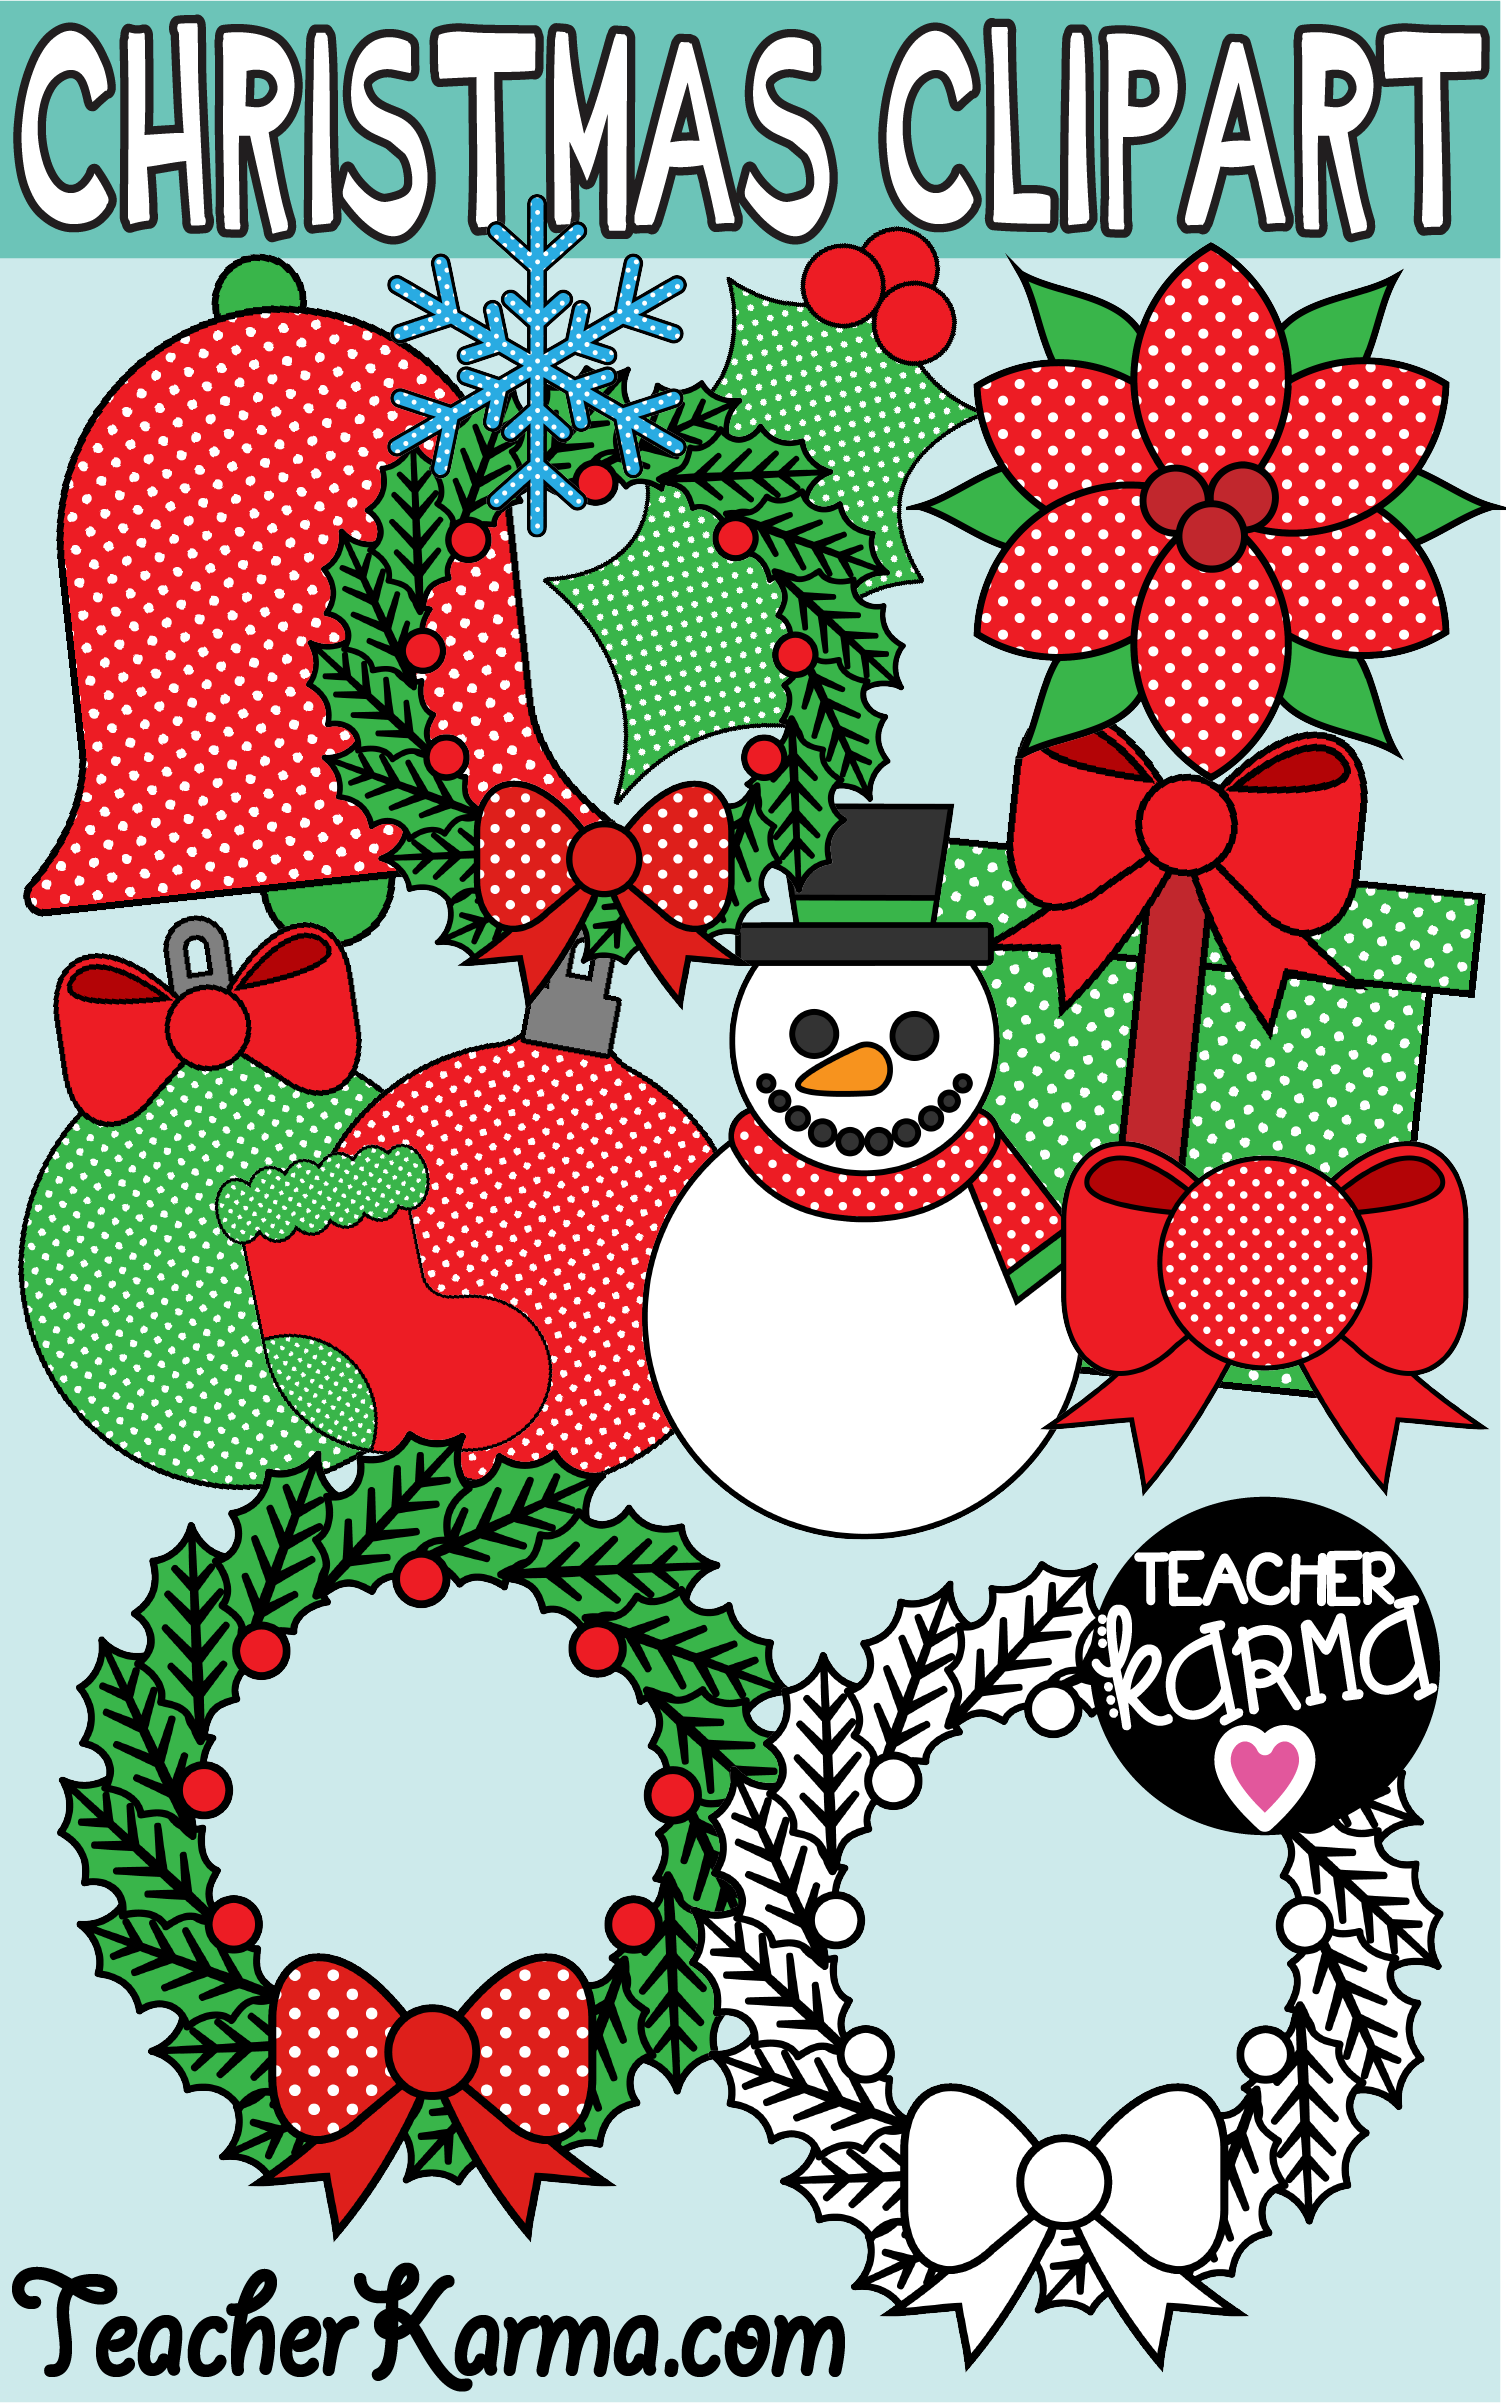 hight resolution of christmas clipart for the classroom holiday graphics include bells ornaments wreaths snowmen gifts bows presents stockings holly poinsettia